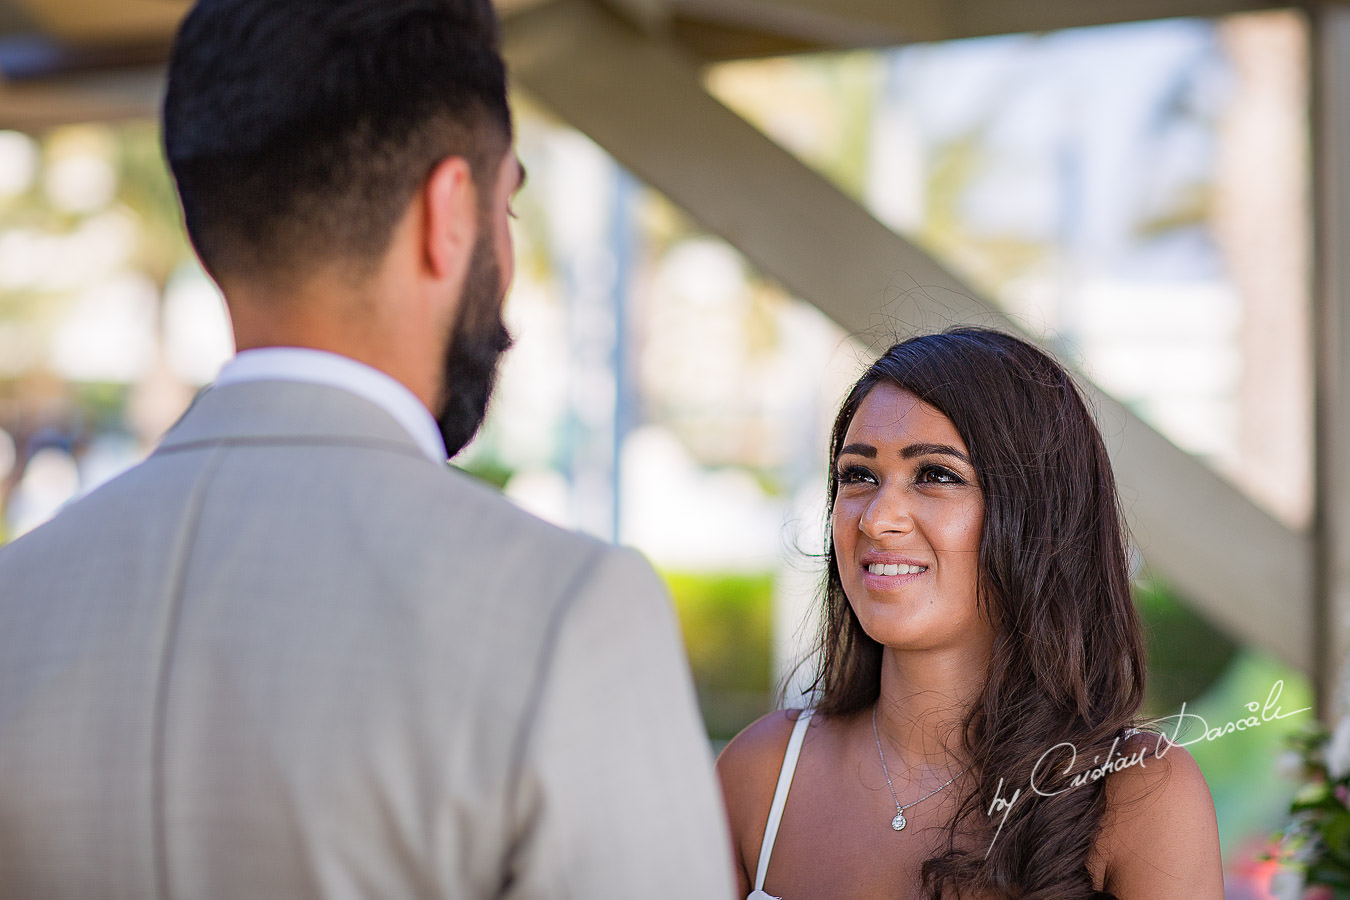 Bride and Groom changing vows, moments photographed by Cristian Dascalu at Athena Beach Hotel in Paphos, Cyprus, during a symbolic wedding.